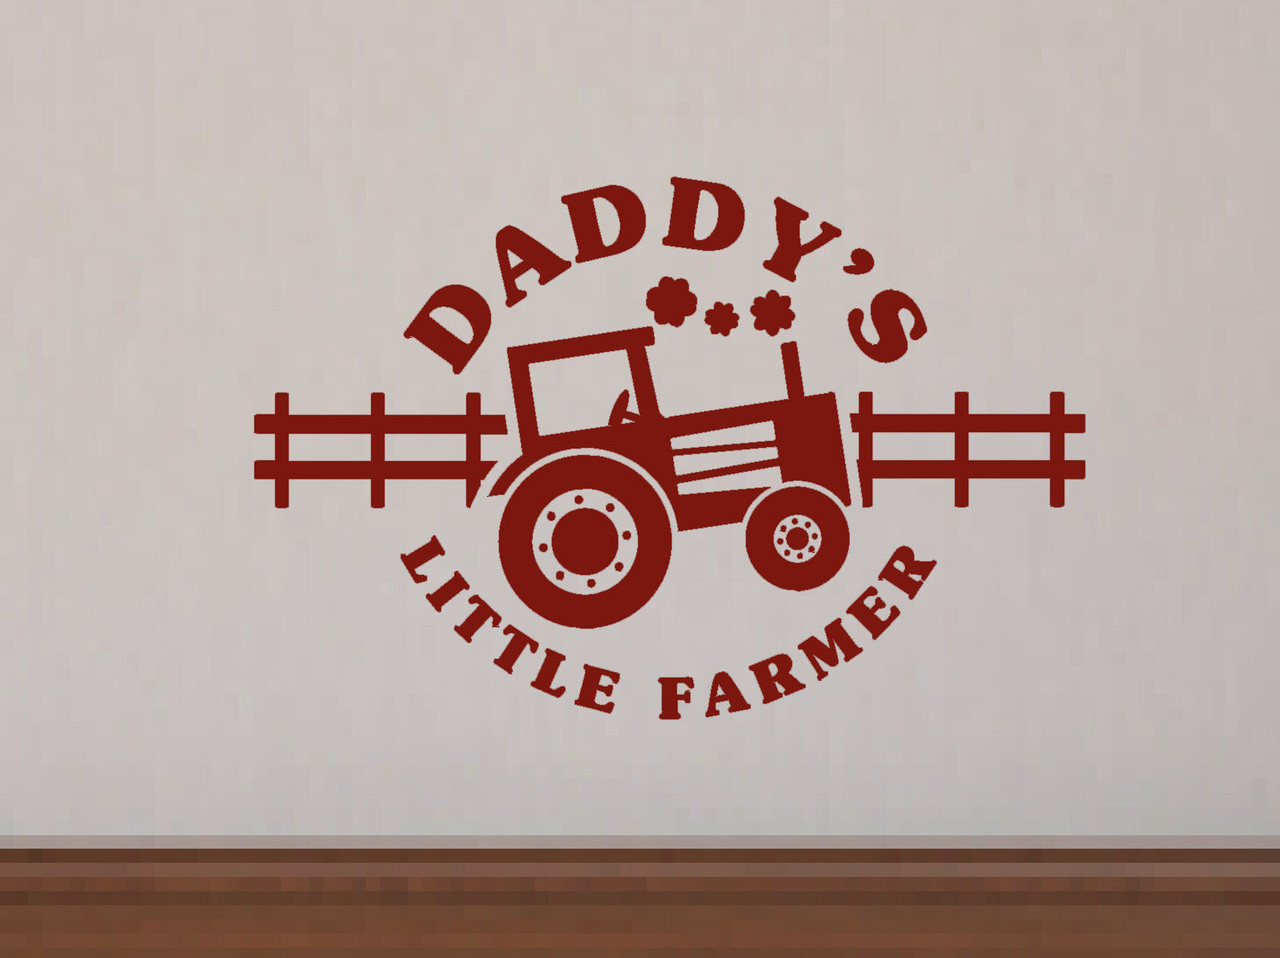 Daddys little farmer boys wall decals stickers farm wall dcor daddys little farmer boys wall decal stickers with tractor art graphics loading zoom amipublicfo Gallery